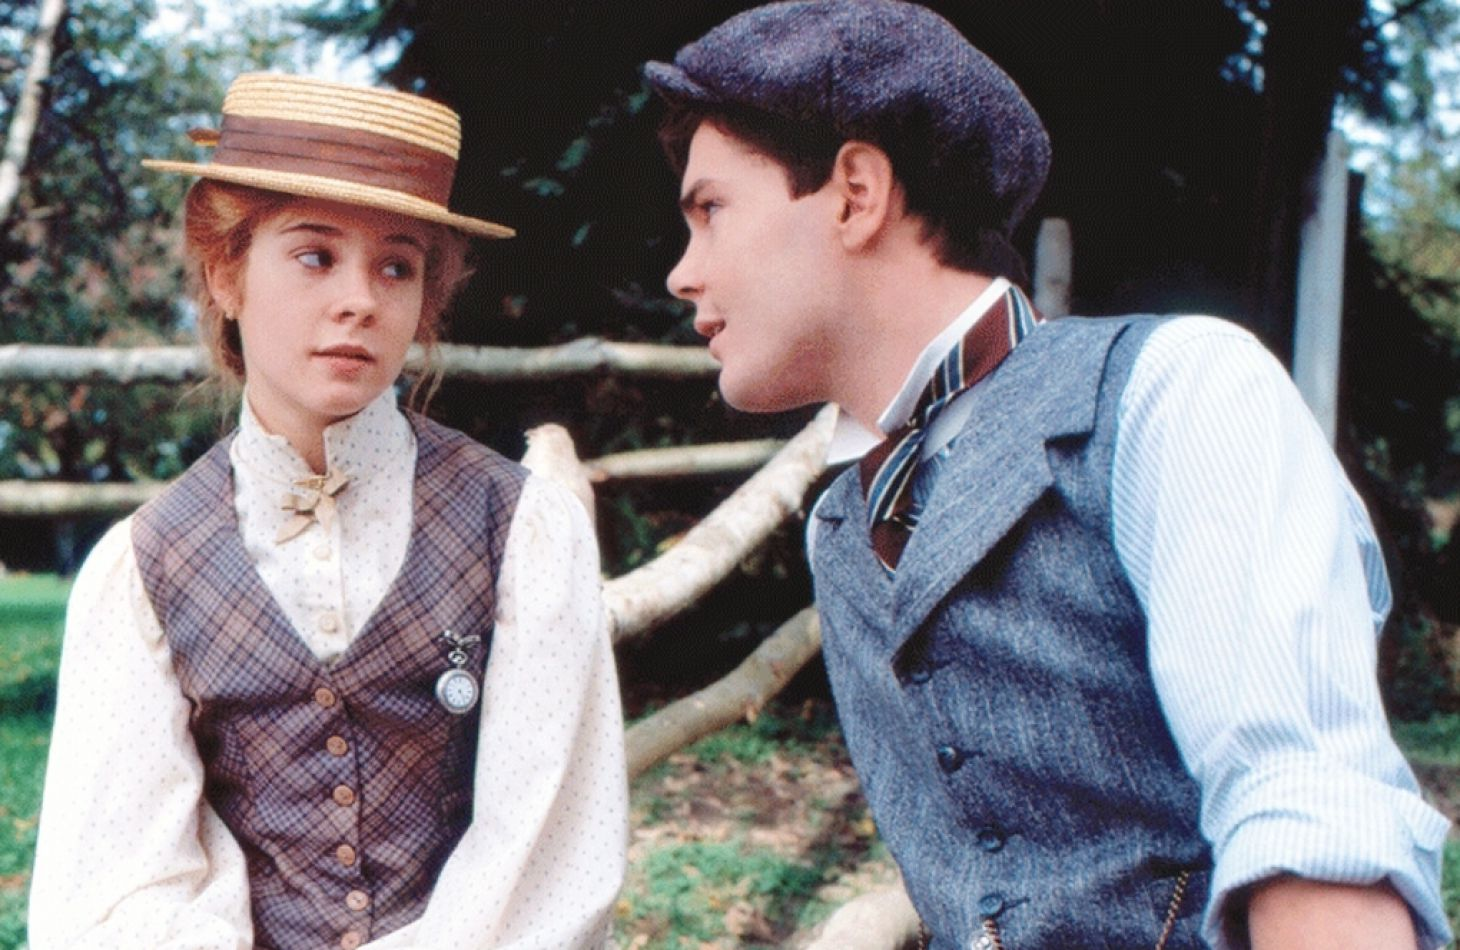 Anne of green gables actor jonathan crombie dies at 48 for Anne maison aux pignons verts